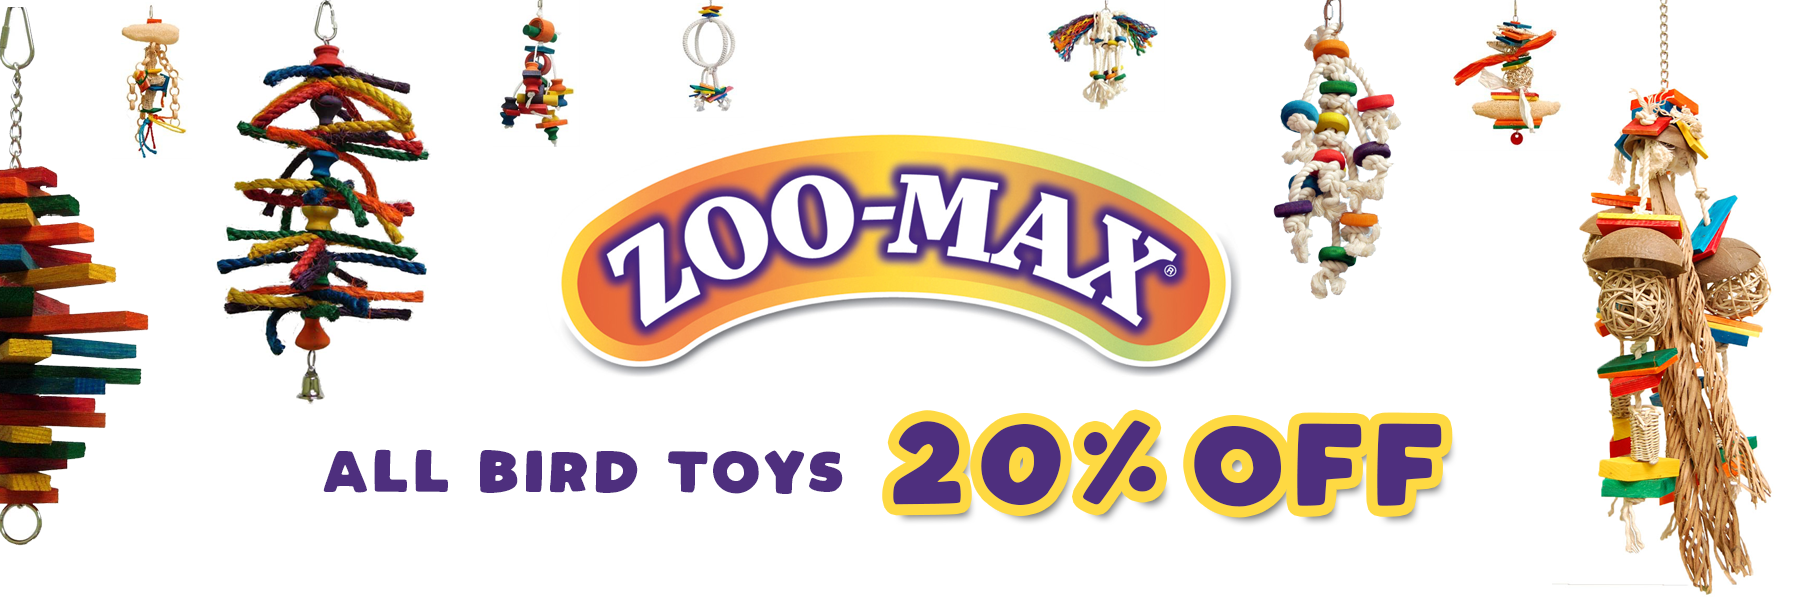 Zoo Max Special